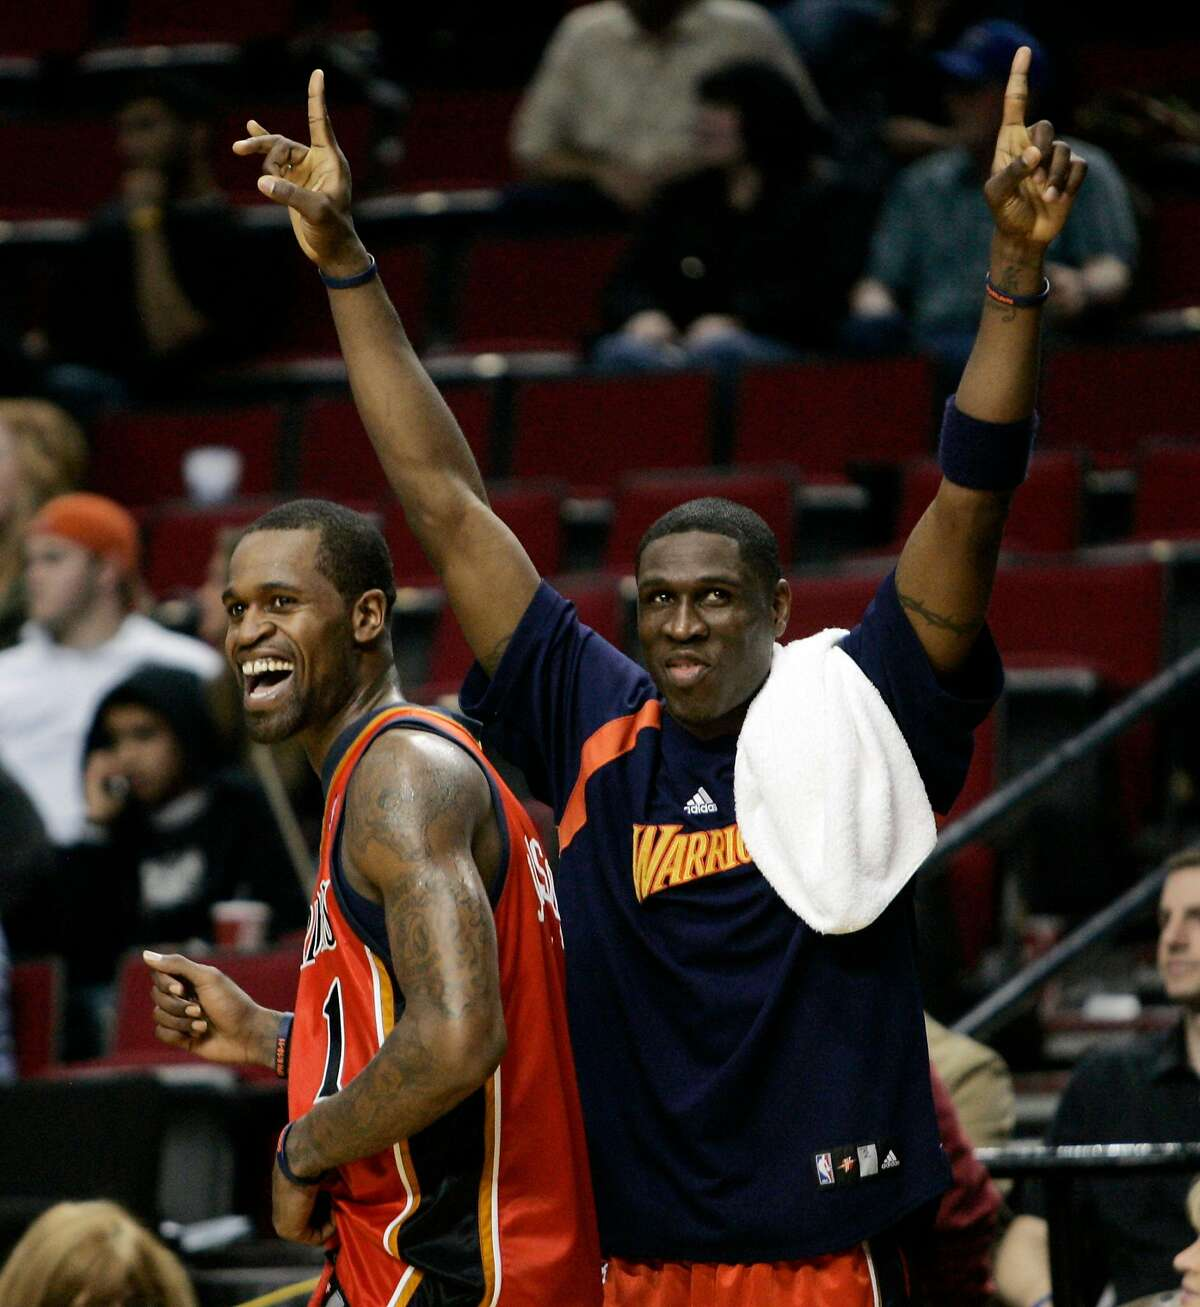 Golden State Warriors' Stephen Jackson, left, and Mickael Pietrus, of France, celebrate after the Warriors defeated the Portland Trail Blazers 120-98 on Wednesday, April 18, 2007, in Portland, Ore., clinching an NBA basketball playoff berth for the first time since 1994. Jackson led the Warriors with 31 points. (AP Photo/Don Ryan) Ran on: 04-19-2007 Stephen Jackson, left, and Mickael Pietrus celebrate the Warriors playoff-clinching win in the final game of the regular season. Ran on: 04-19-2007 Ran on: 04-19-2007 Stephen Jackson (left) and Mickael Pietrus celebrate the Warriors playoff-clinching win in the final game of the regular season.